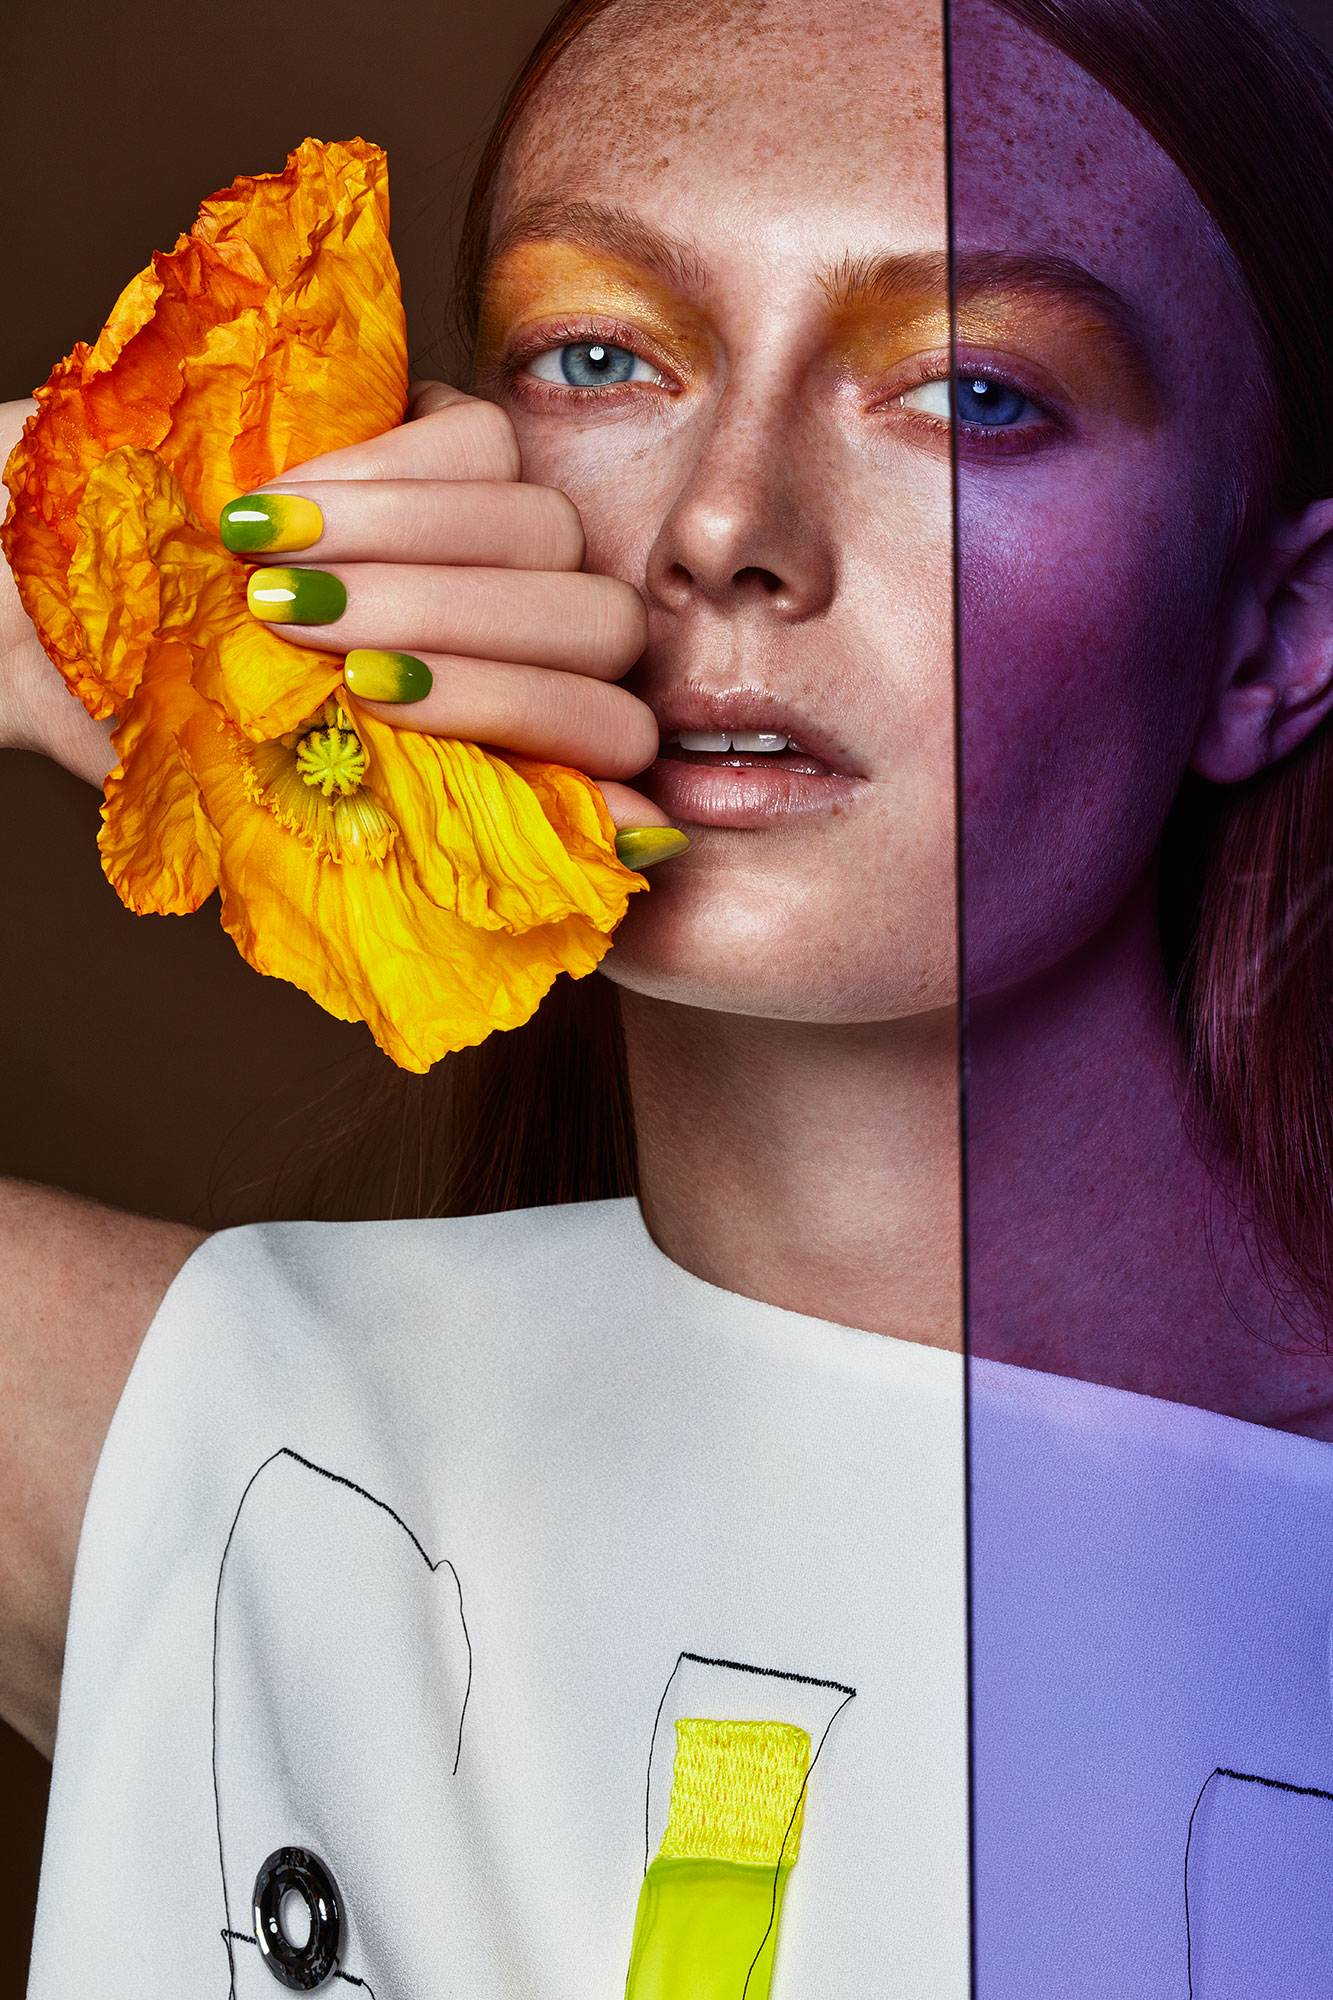 BEAUTY IMAGE WITH YELLOW/ORANGE POPPY IN THE HAND OF THE MODEL